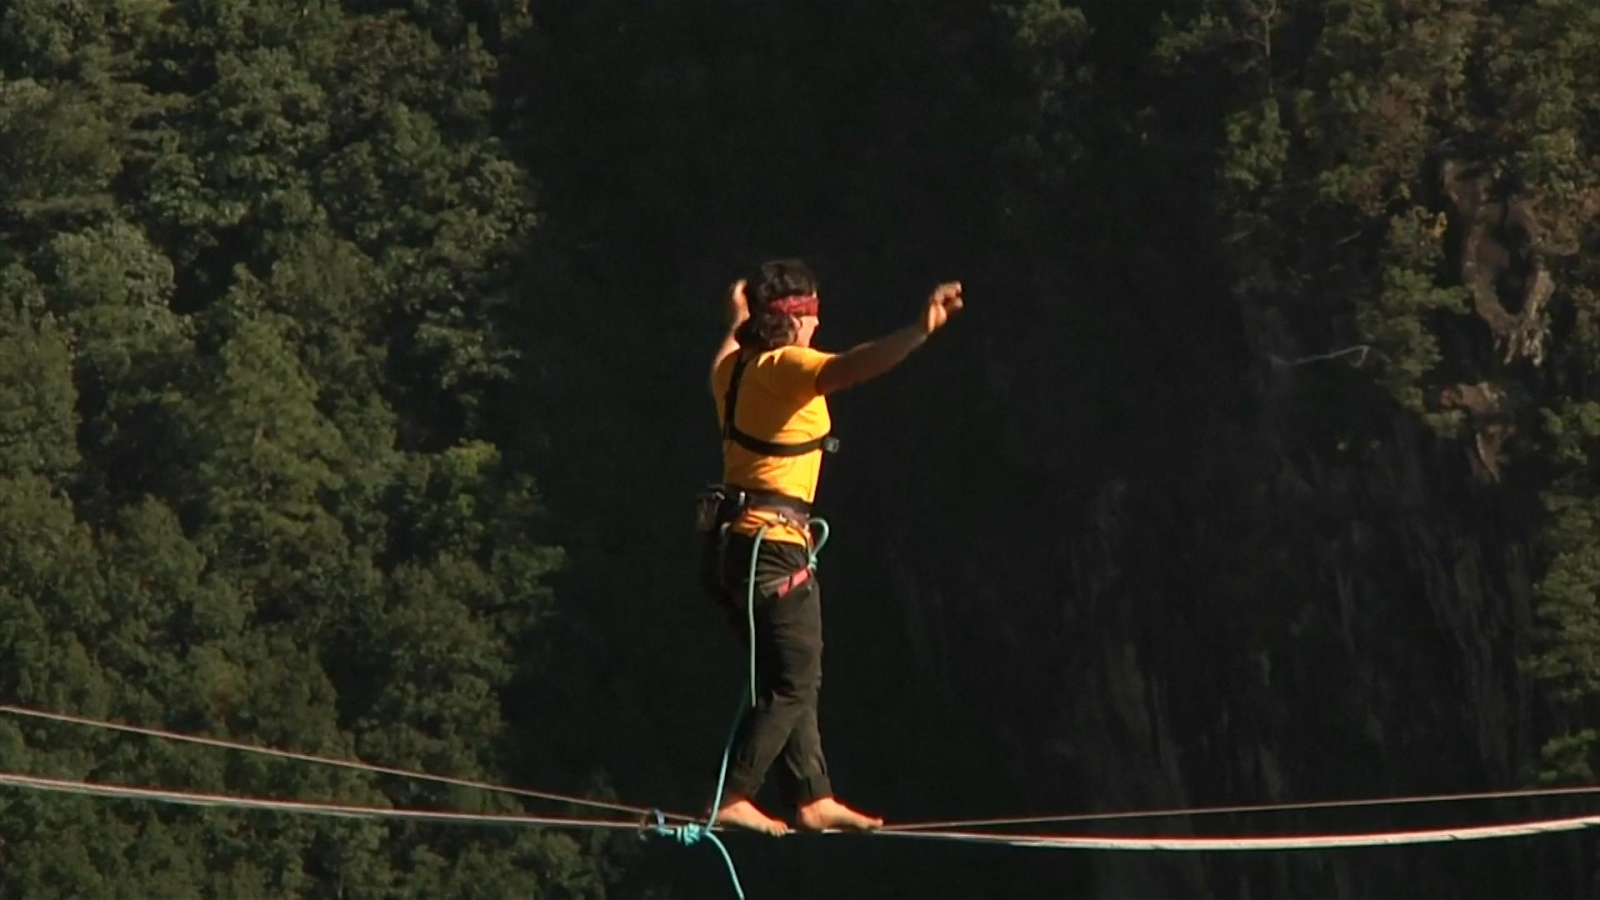 Watch blindfolded man break world record slacklining across Chinese canyon